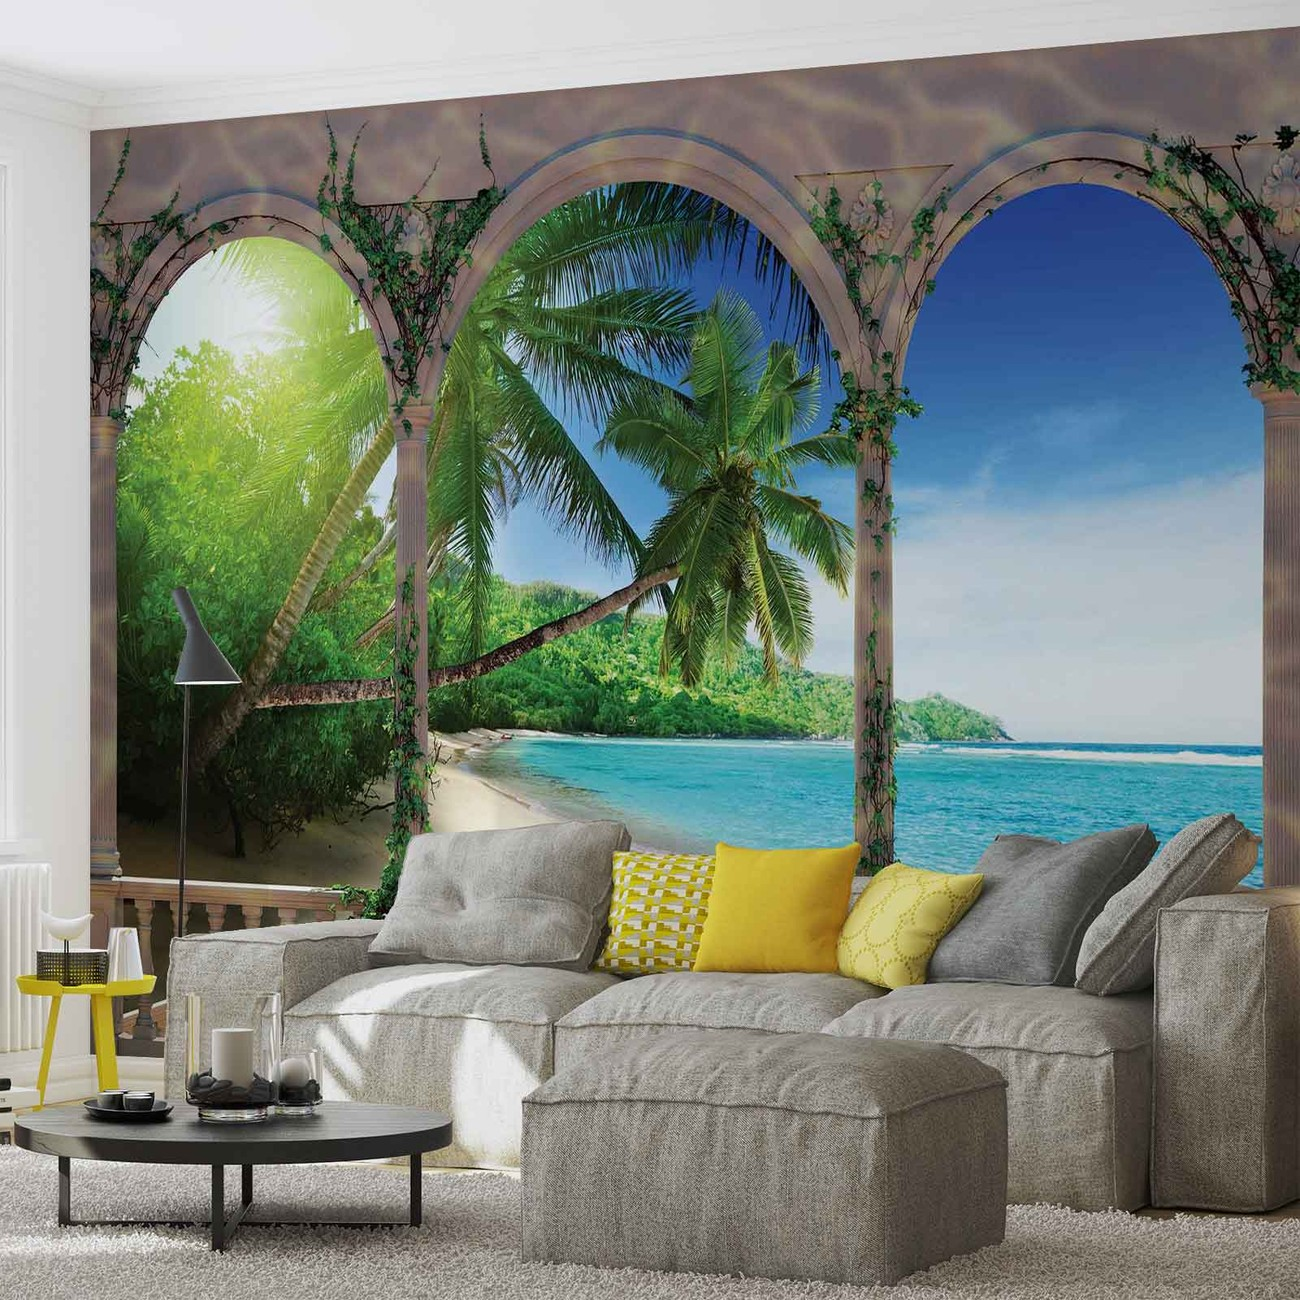 Beach tropical wall paper mural buy at europosters for Beach mural for wall